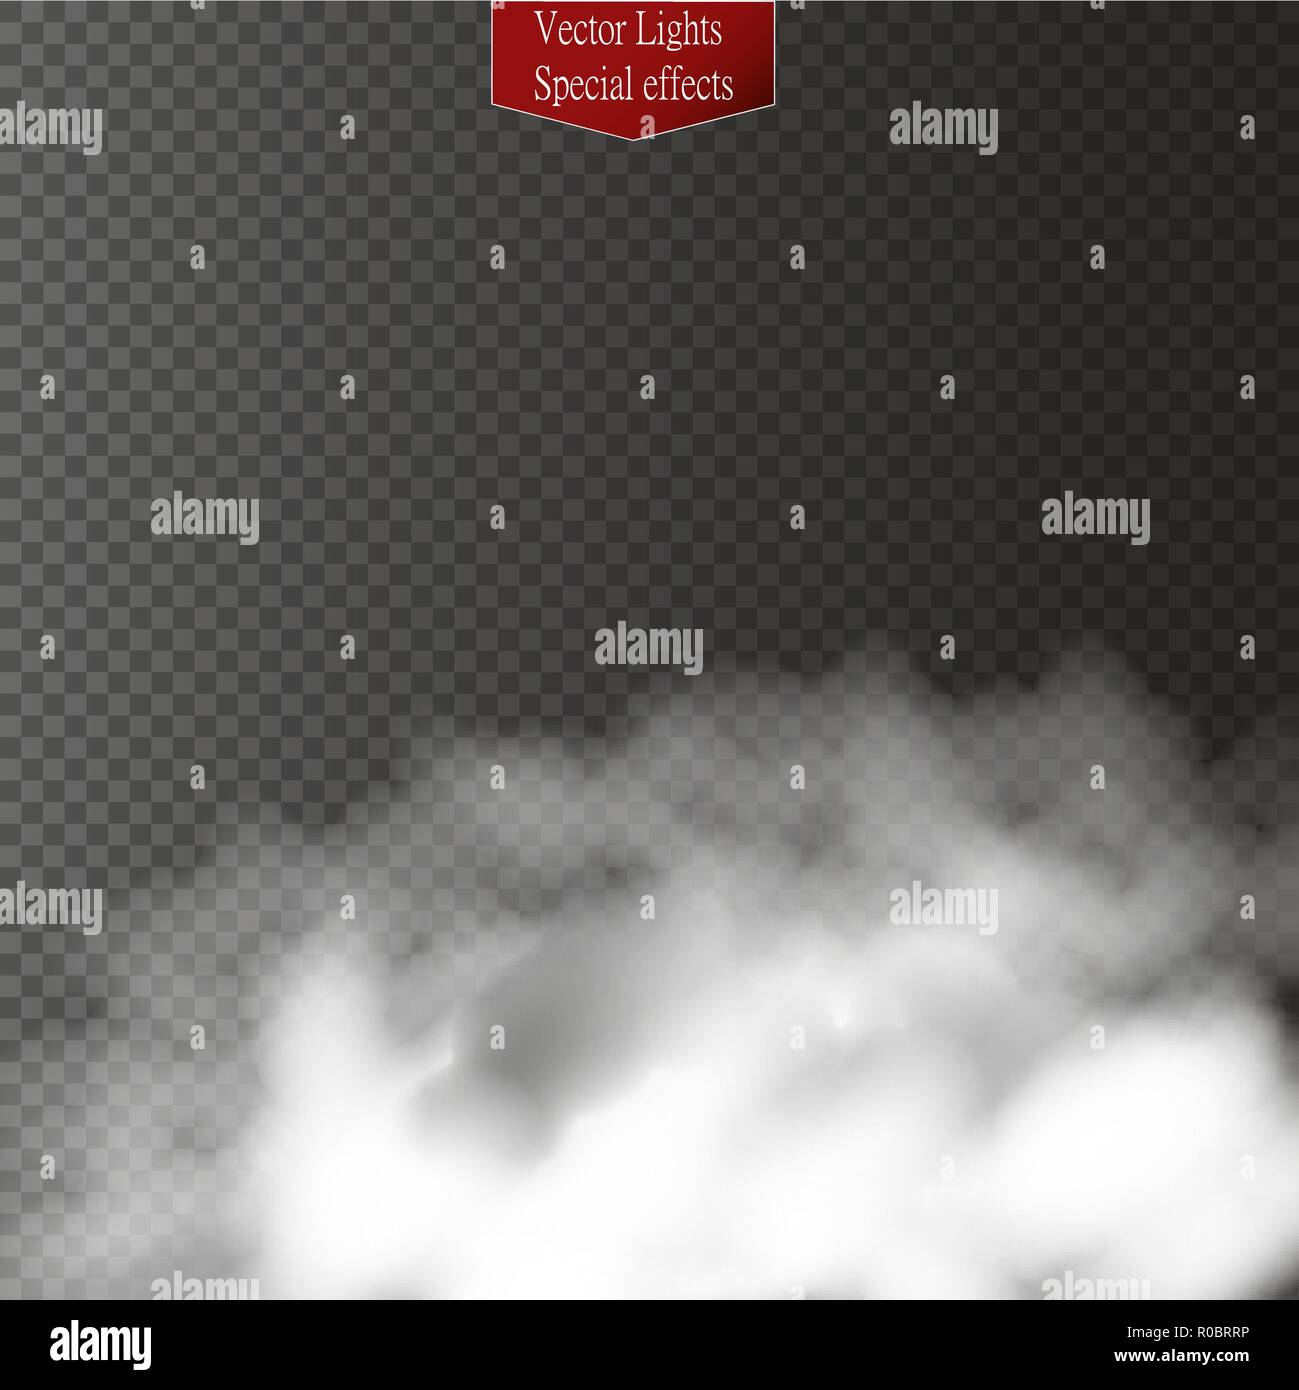 Fog or smoke isolated transparent special effect. White vector cloudiness, mist or smog background. Vector illustration - Stock Vector